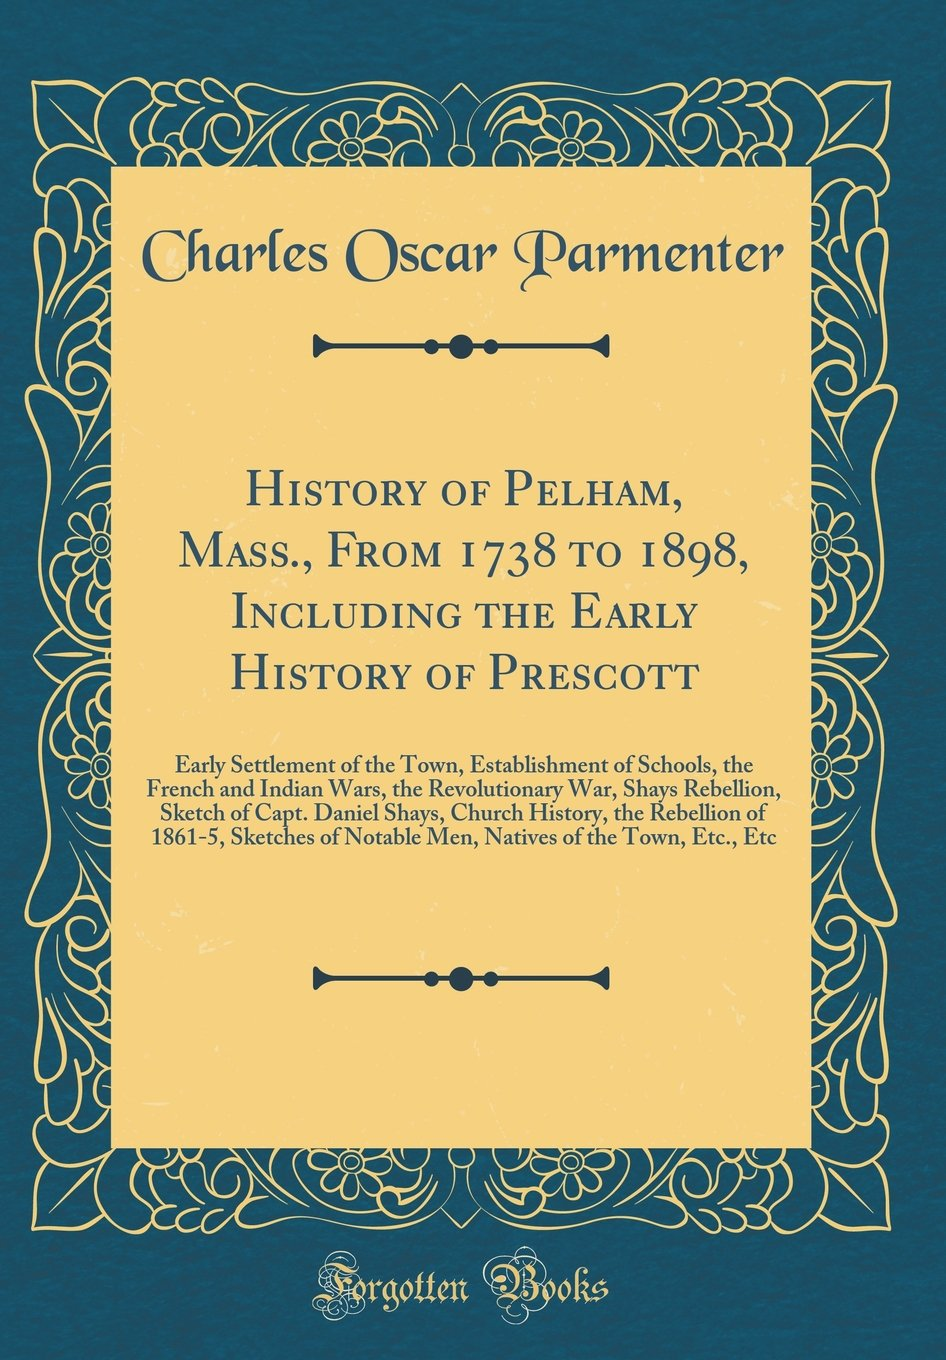 Read Online History of Pelham, Mass., From 1738 to 1898, Including the Early History of Prescott: Early Settlement of the Town, Establishment of Schools, the ... Sketch of Capt. Daniel Shays, Church History, ebook